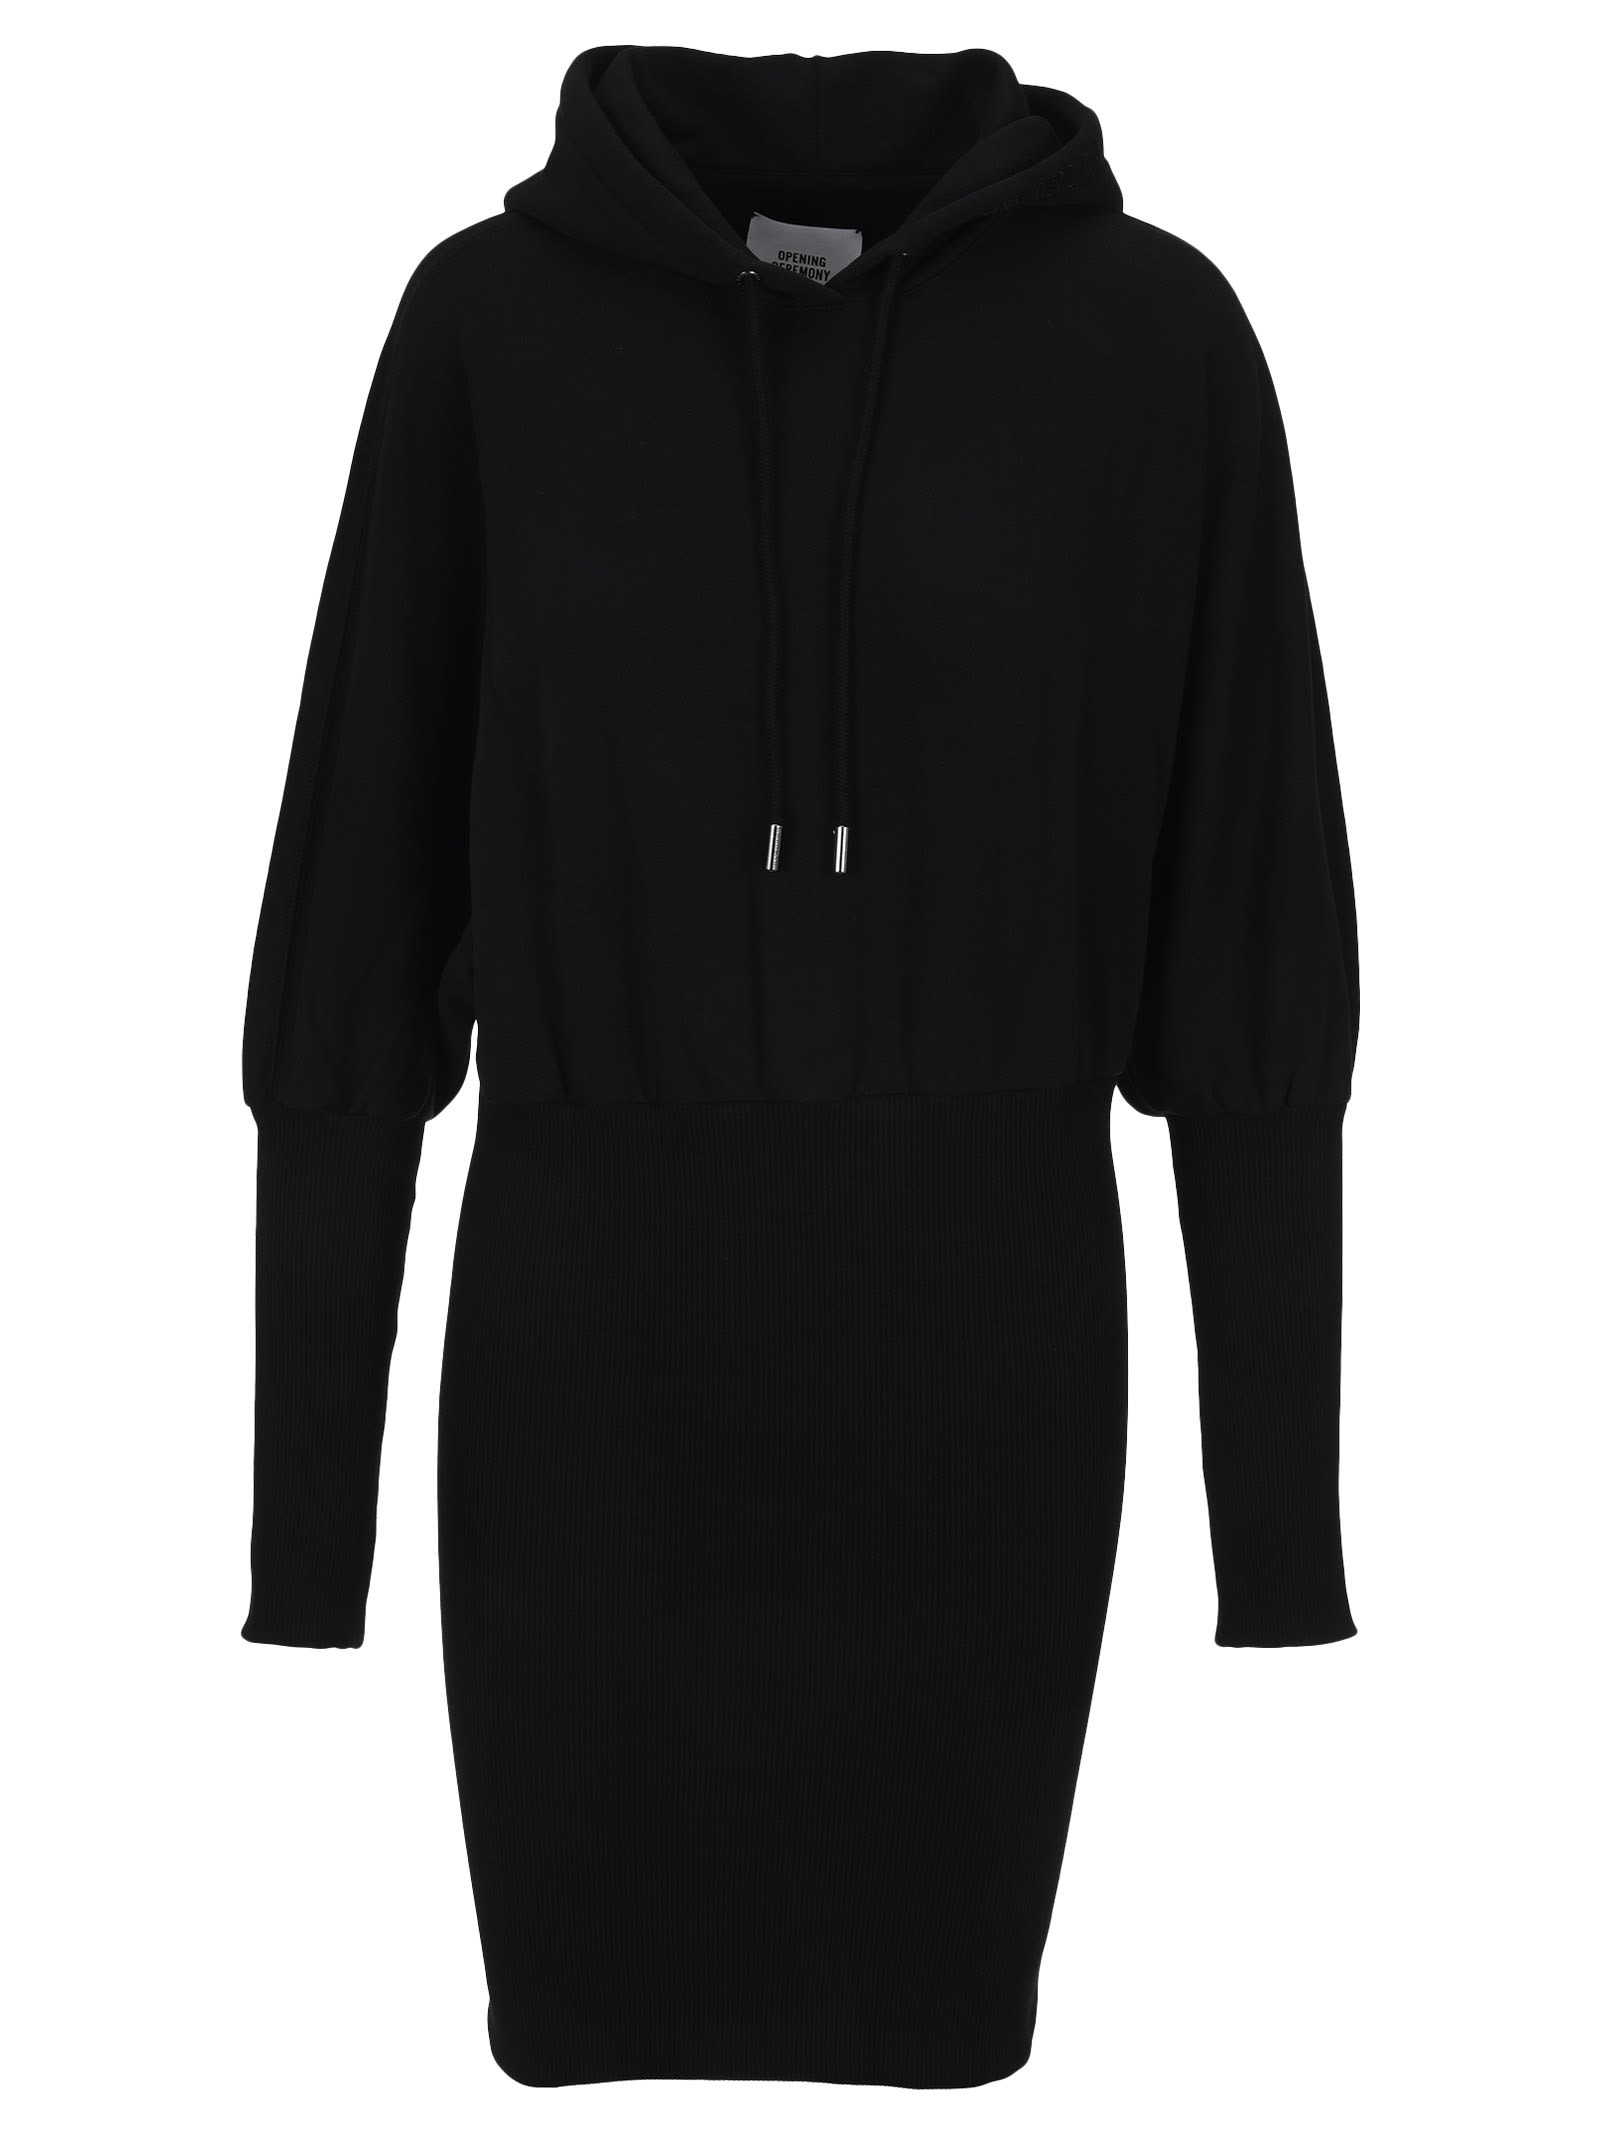 Buy Opening Ceremony Hoodie Dress online, shop Opening Ceremony with free shipping